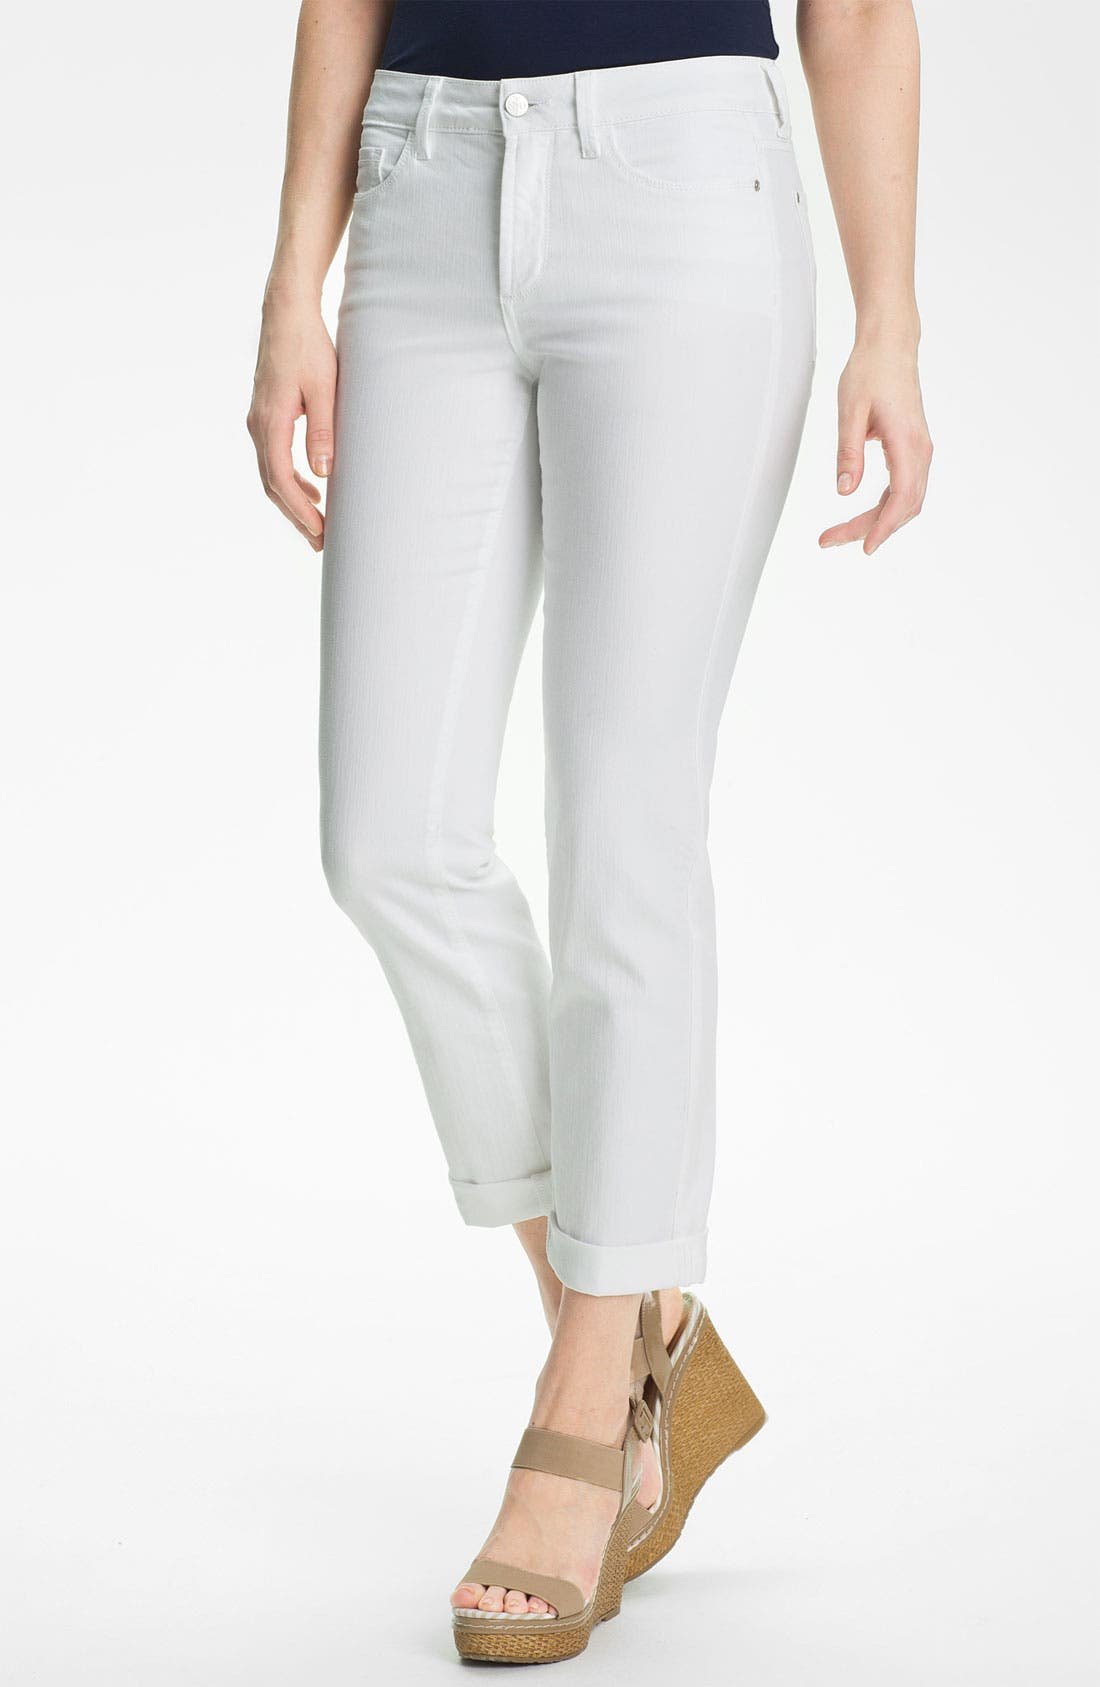 Alternate Image 1 Selected - NYDJ 'Tanya' Stretch Boyfriend Jeans